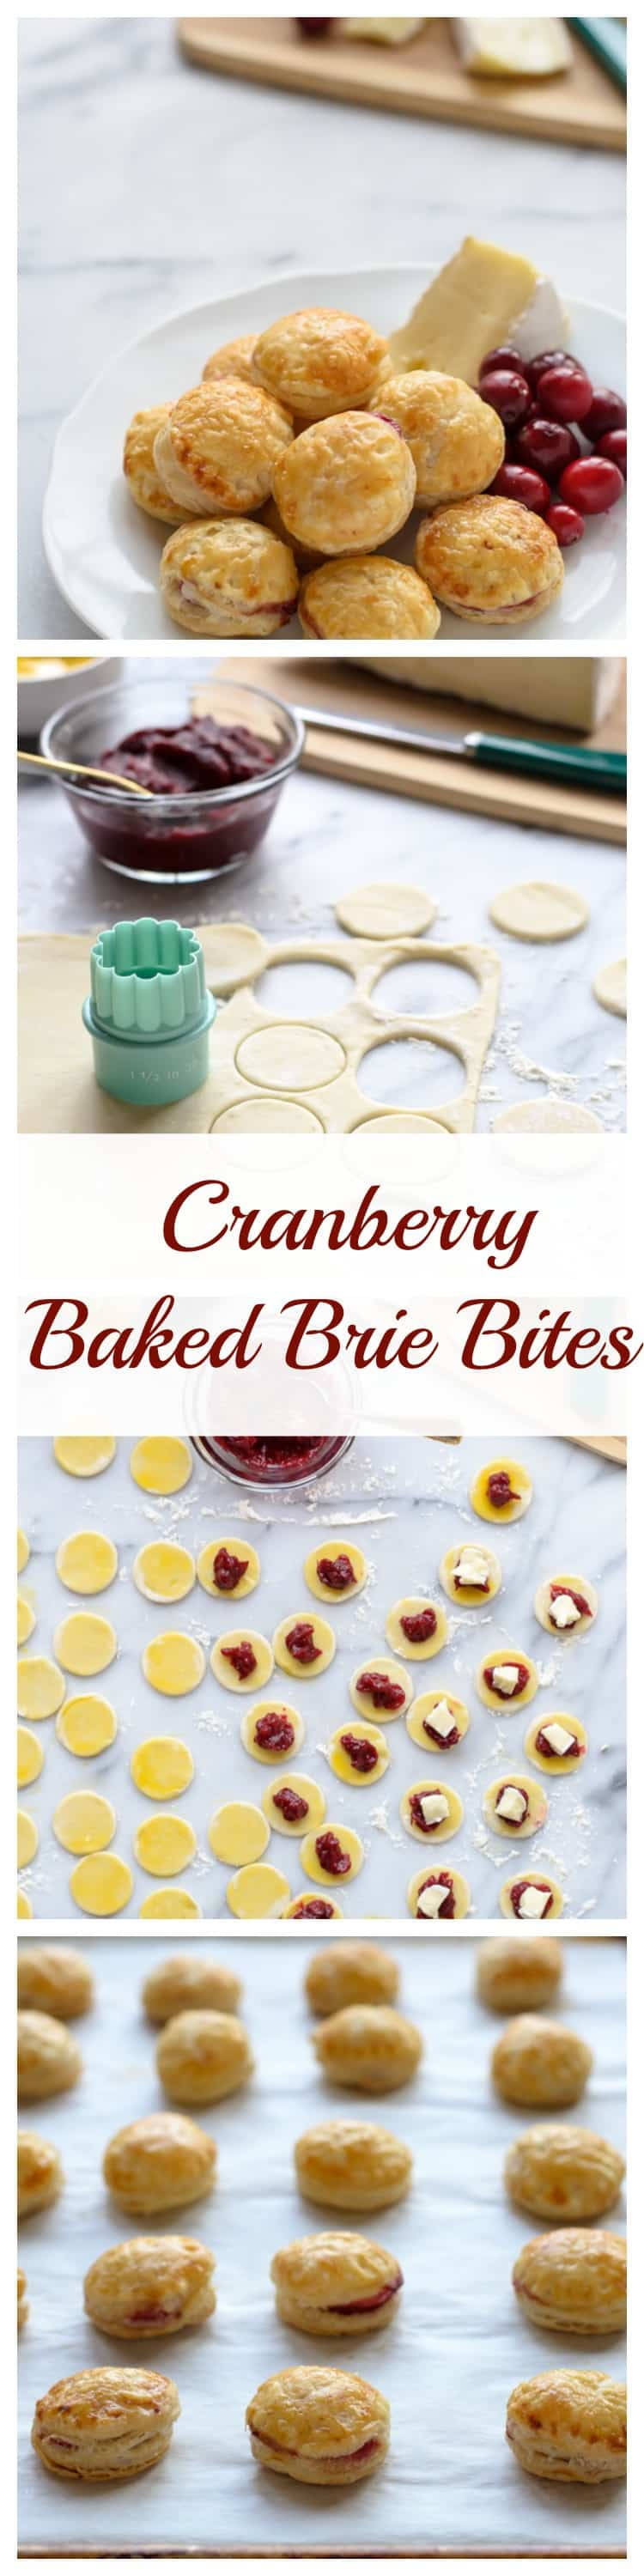 Cranberry Brie Puff Pastry Bites. Each one is like a mini baked Brie! Make and freeze ahead for an easy Thanksgiving or Christmas appetizer.